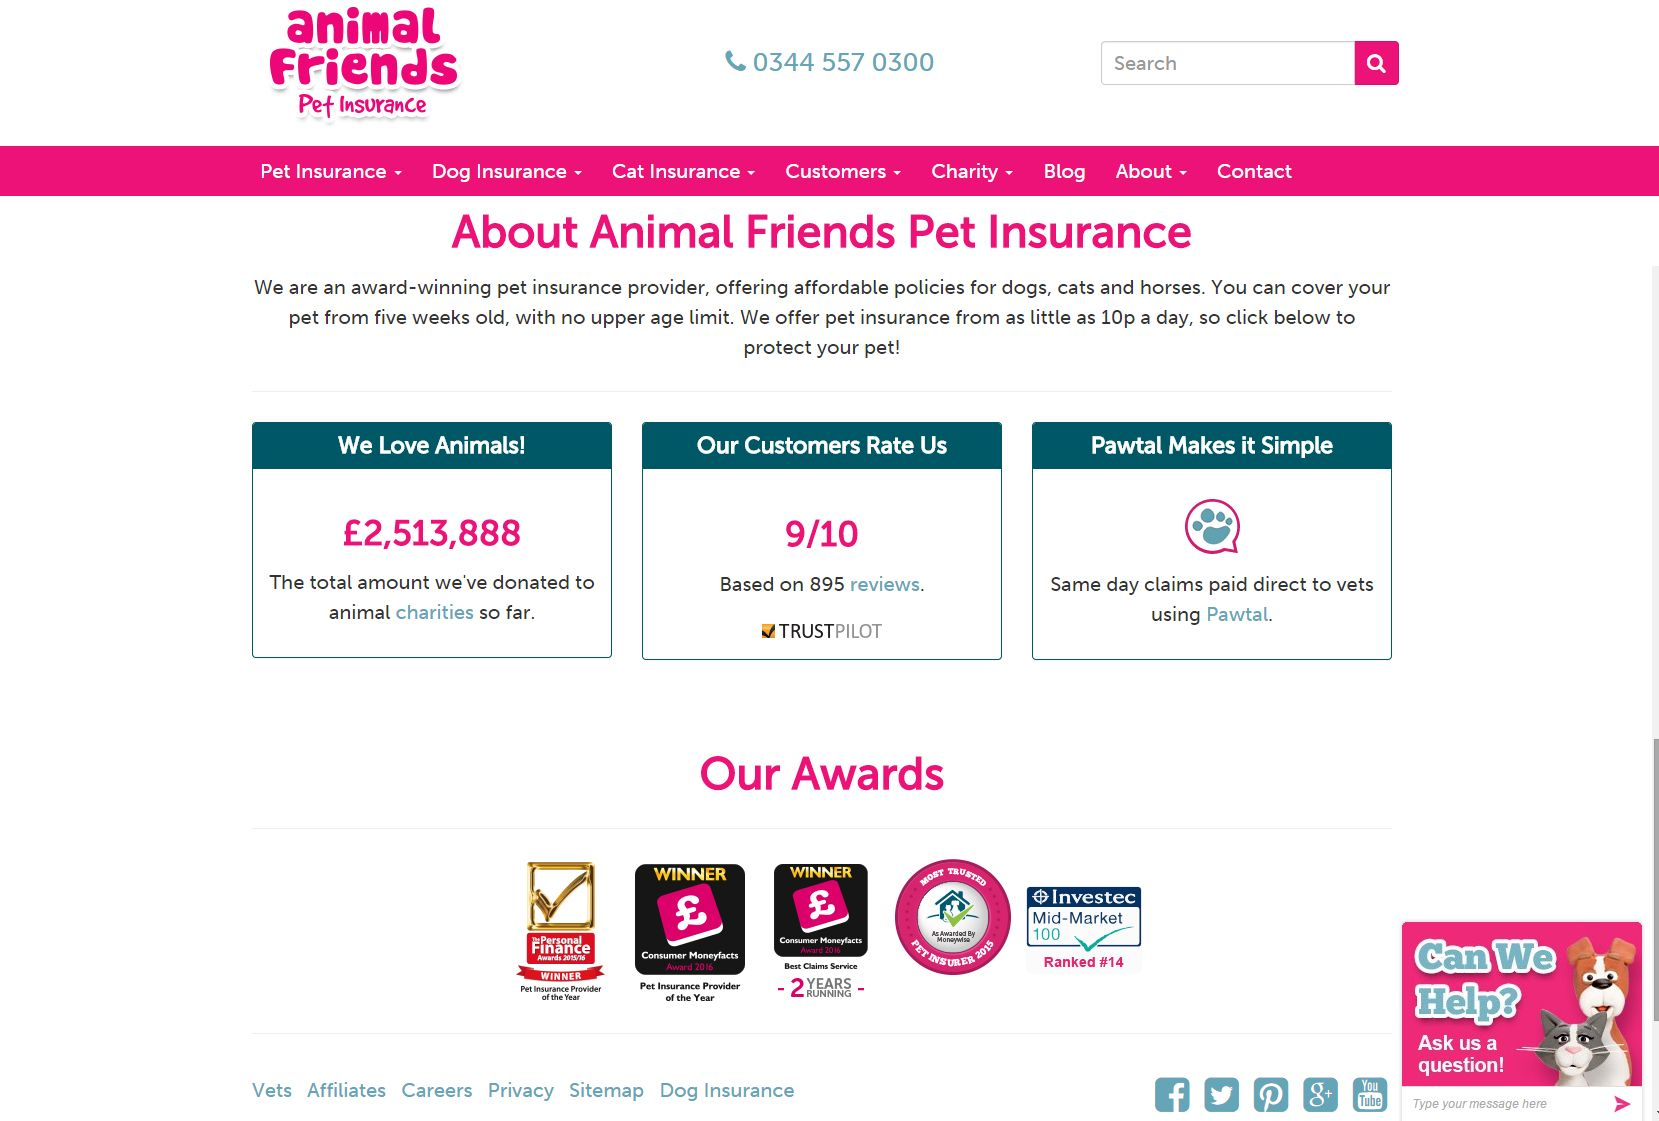 Animal Friends Celebrating Their Cmfawards Success Online Https